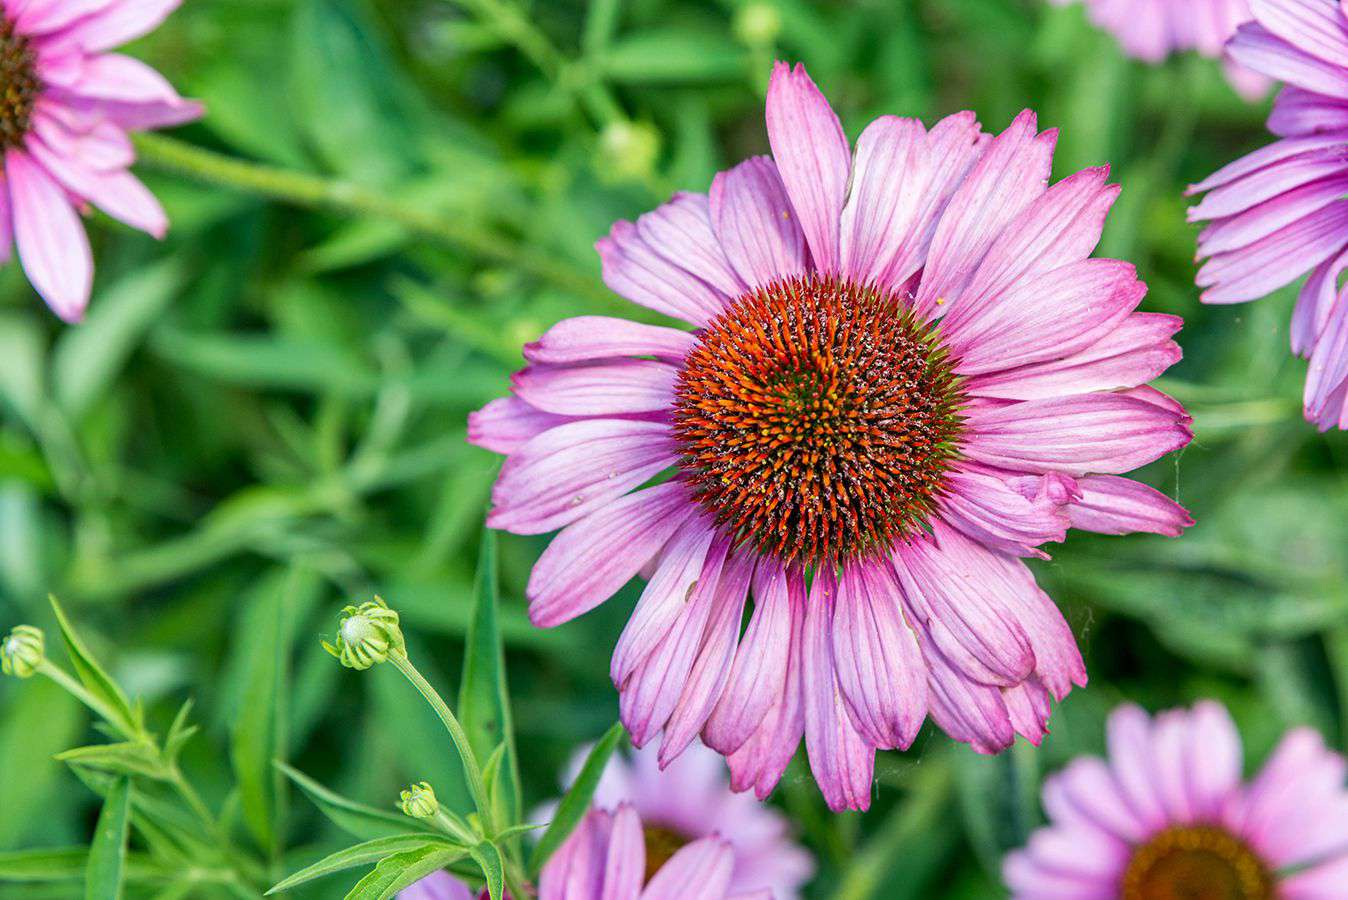 Purple coneflower with light pink radiating petals with spiny center cone bloom closeup